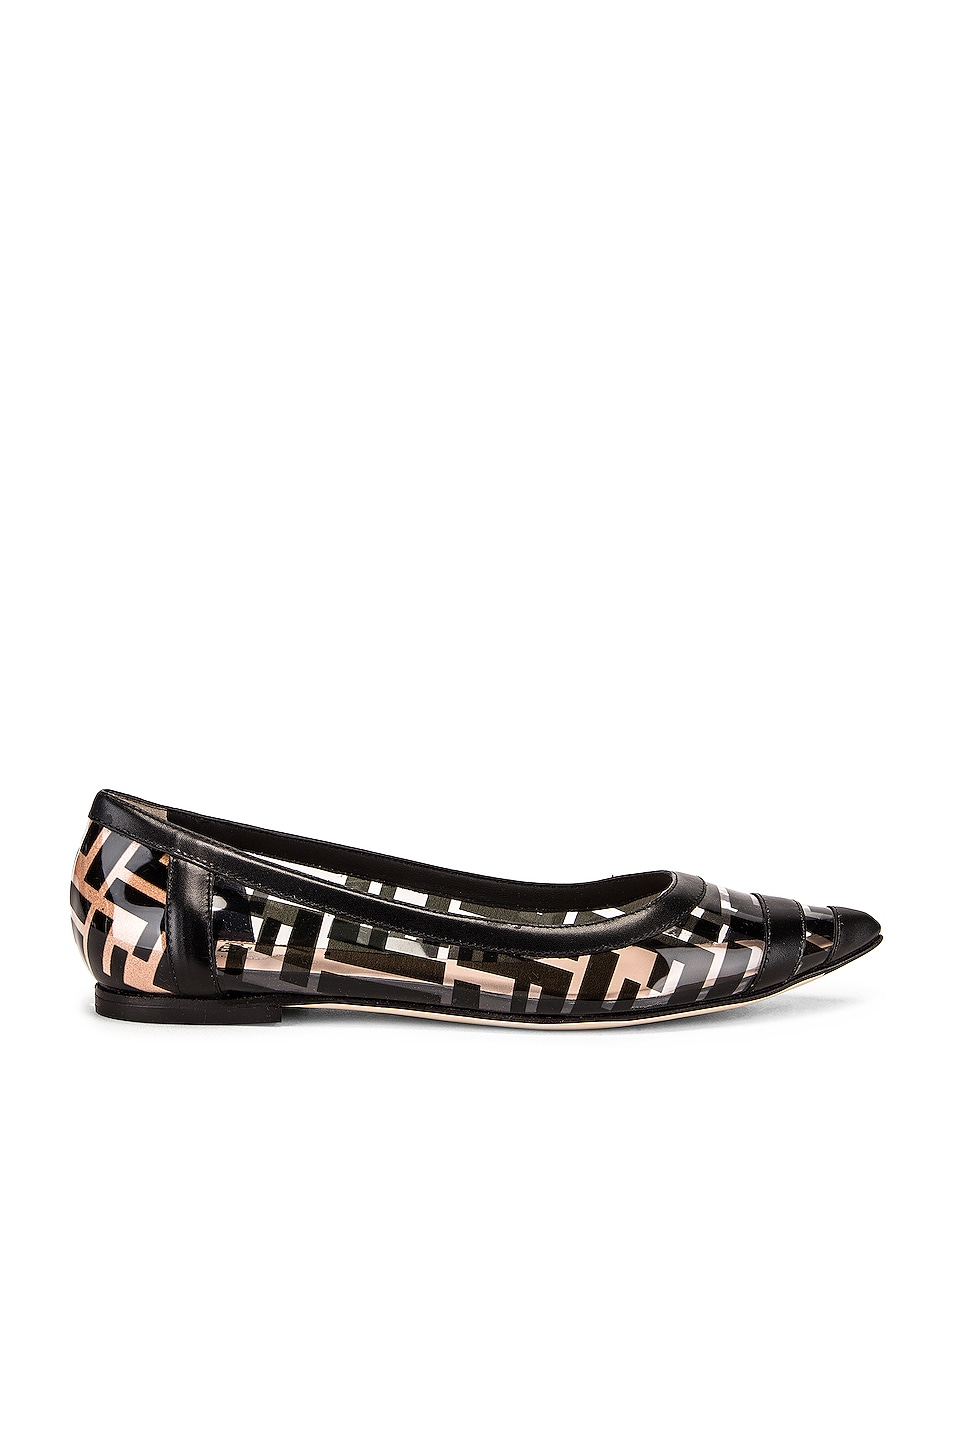 Image 1 of Fendi Logo Flats in Black